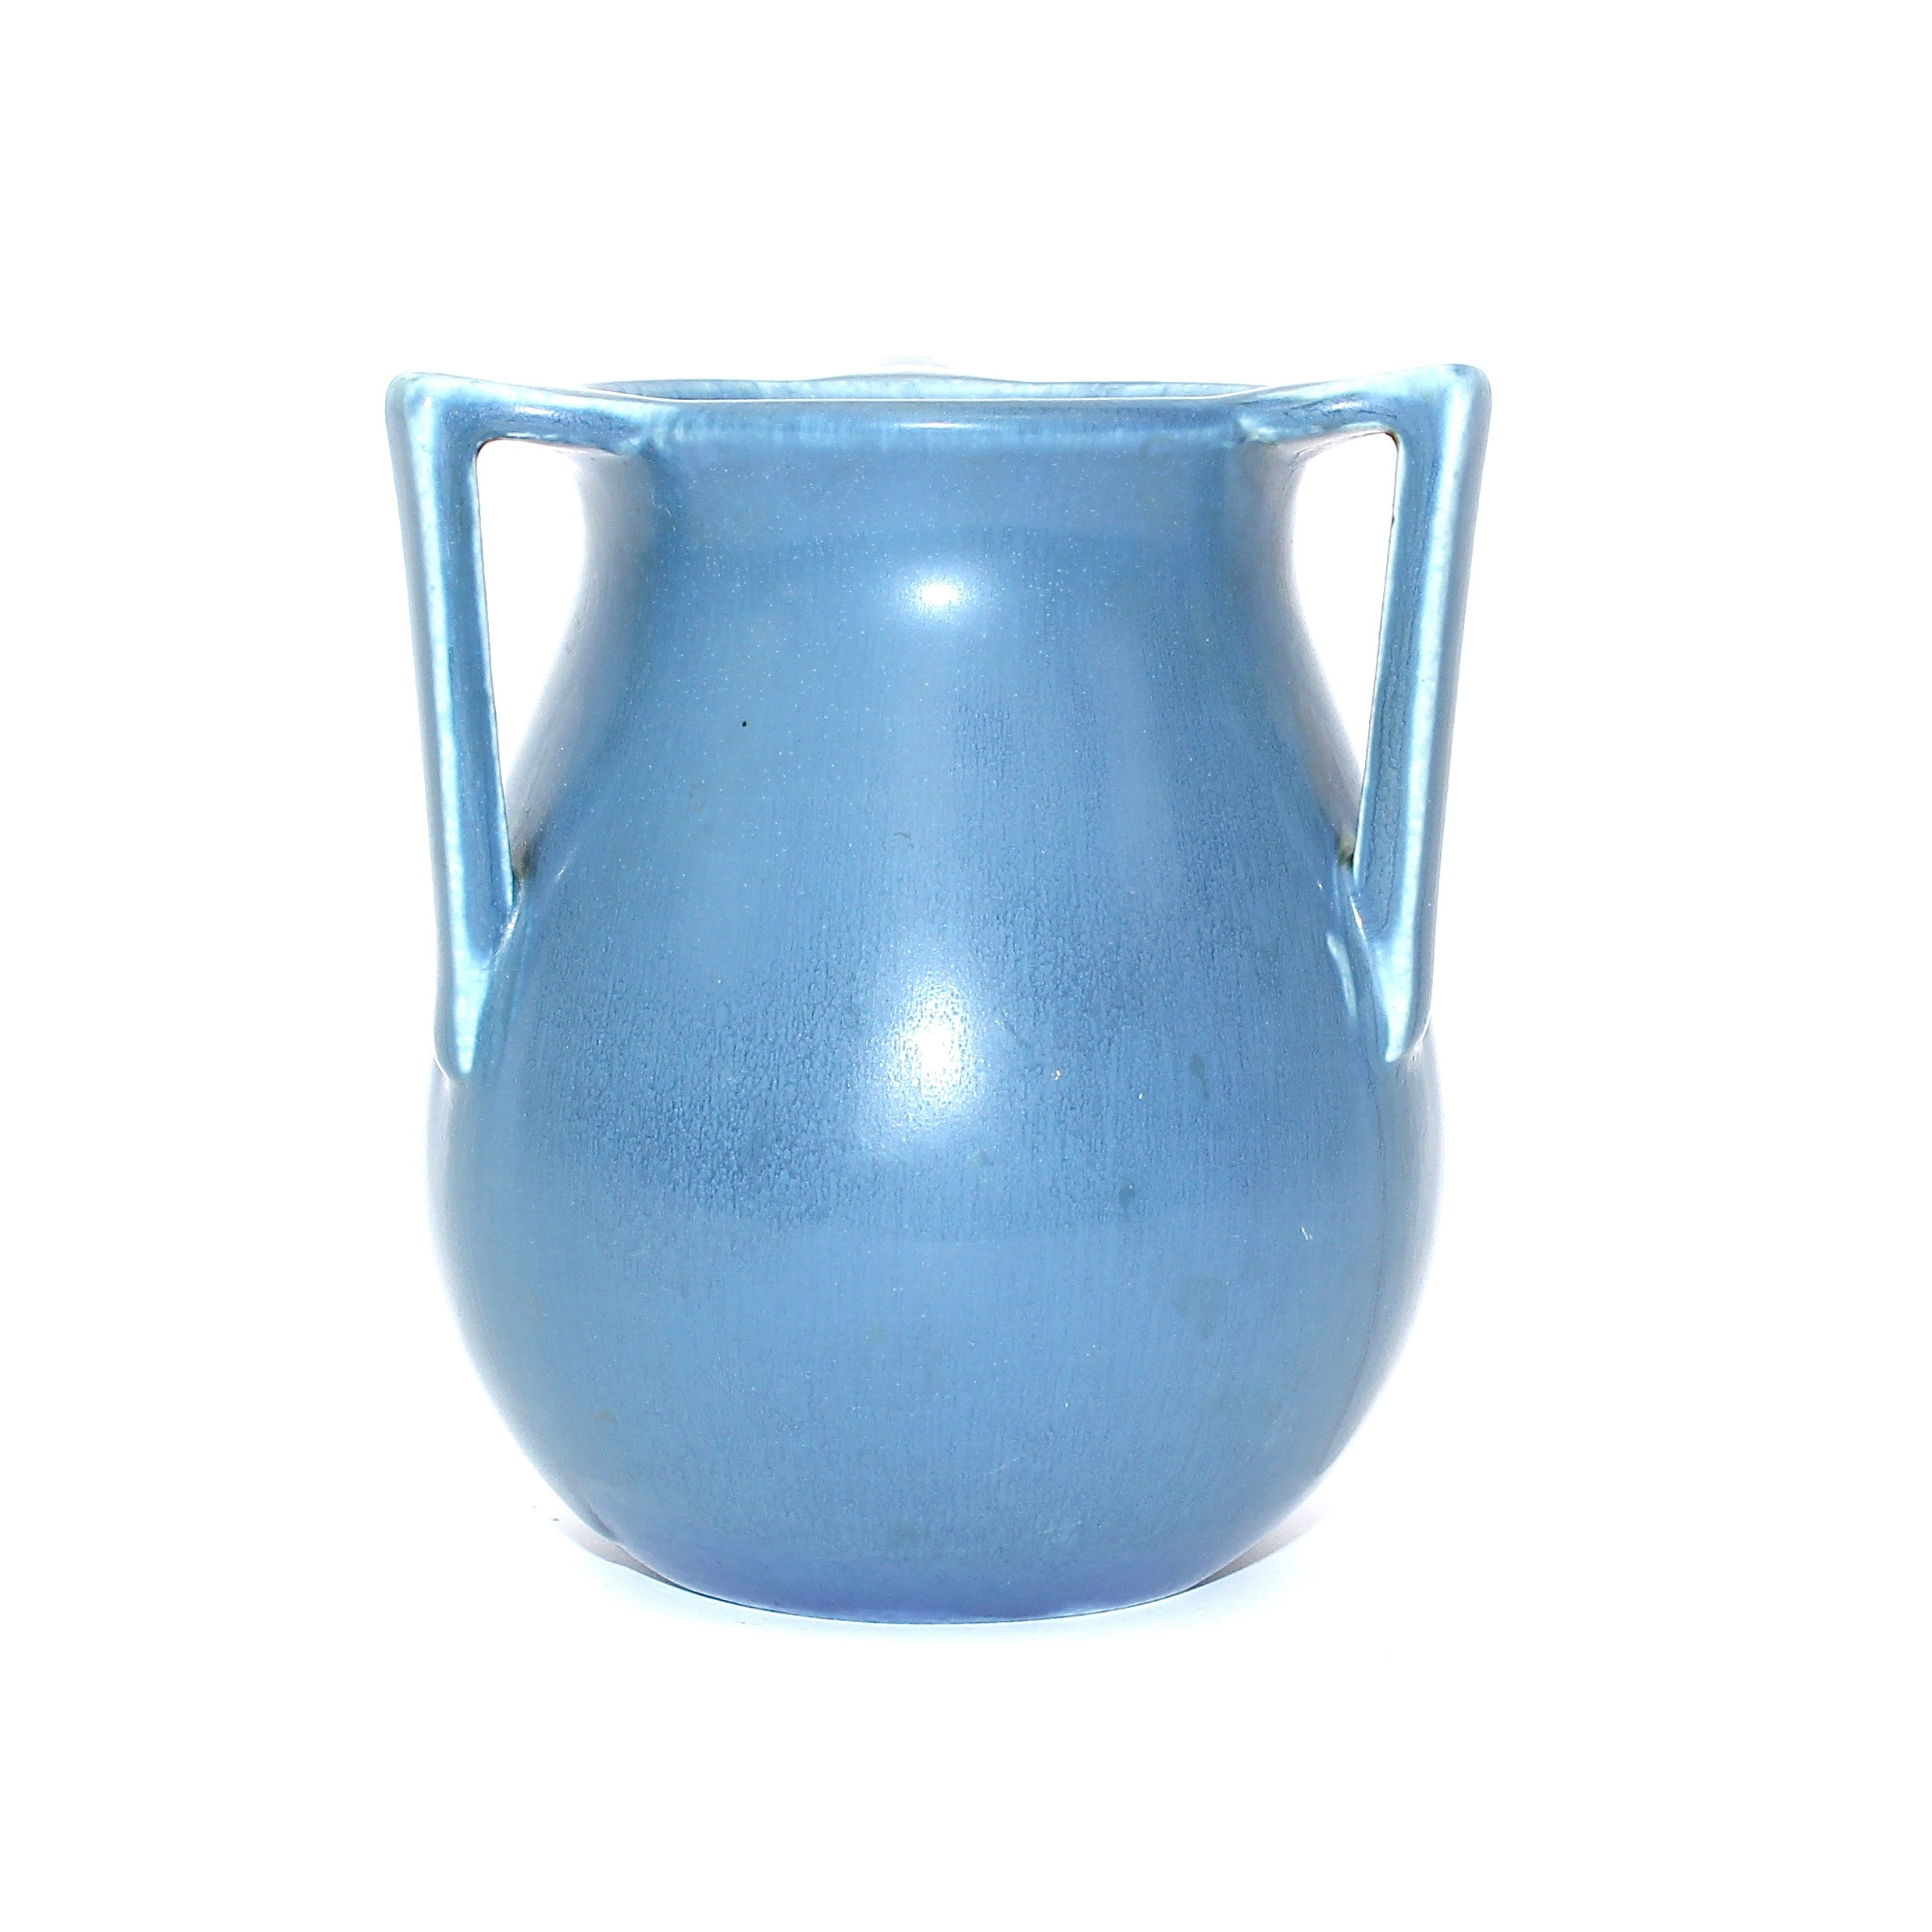 Rookwood Pottery Blue Ceramic Three Handled Vase